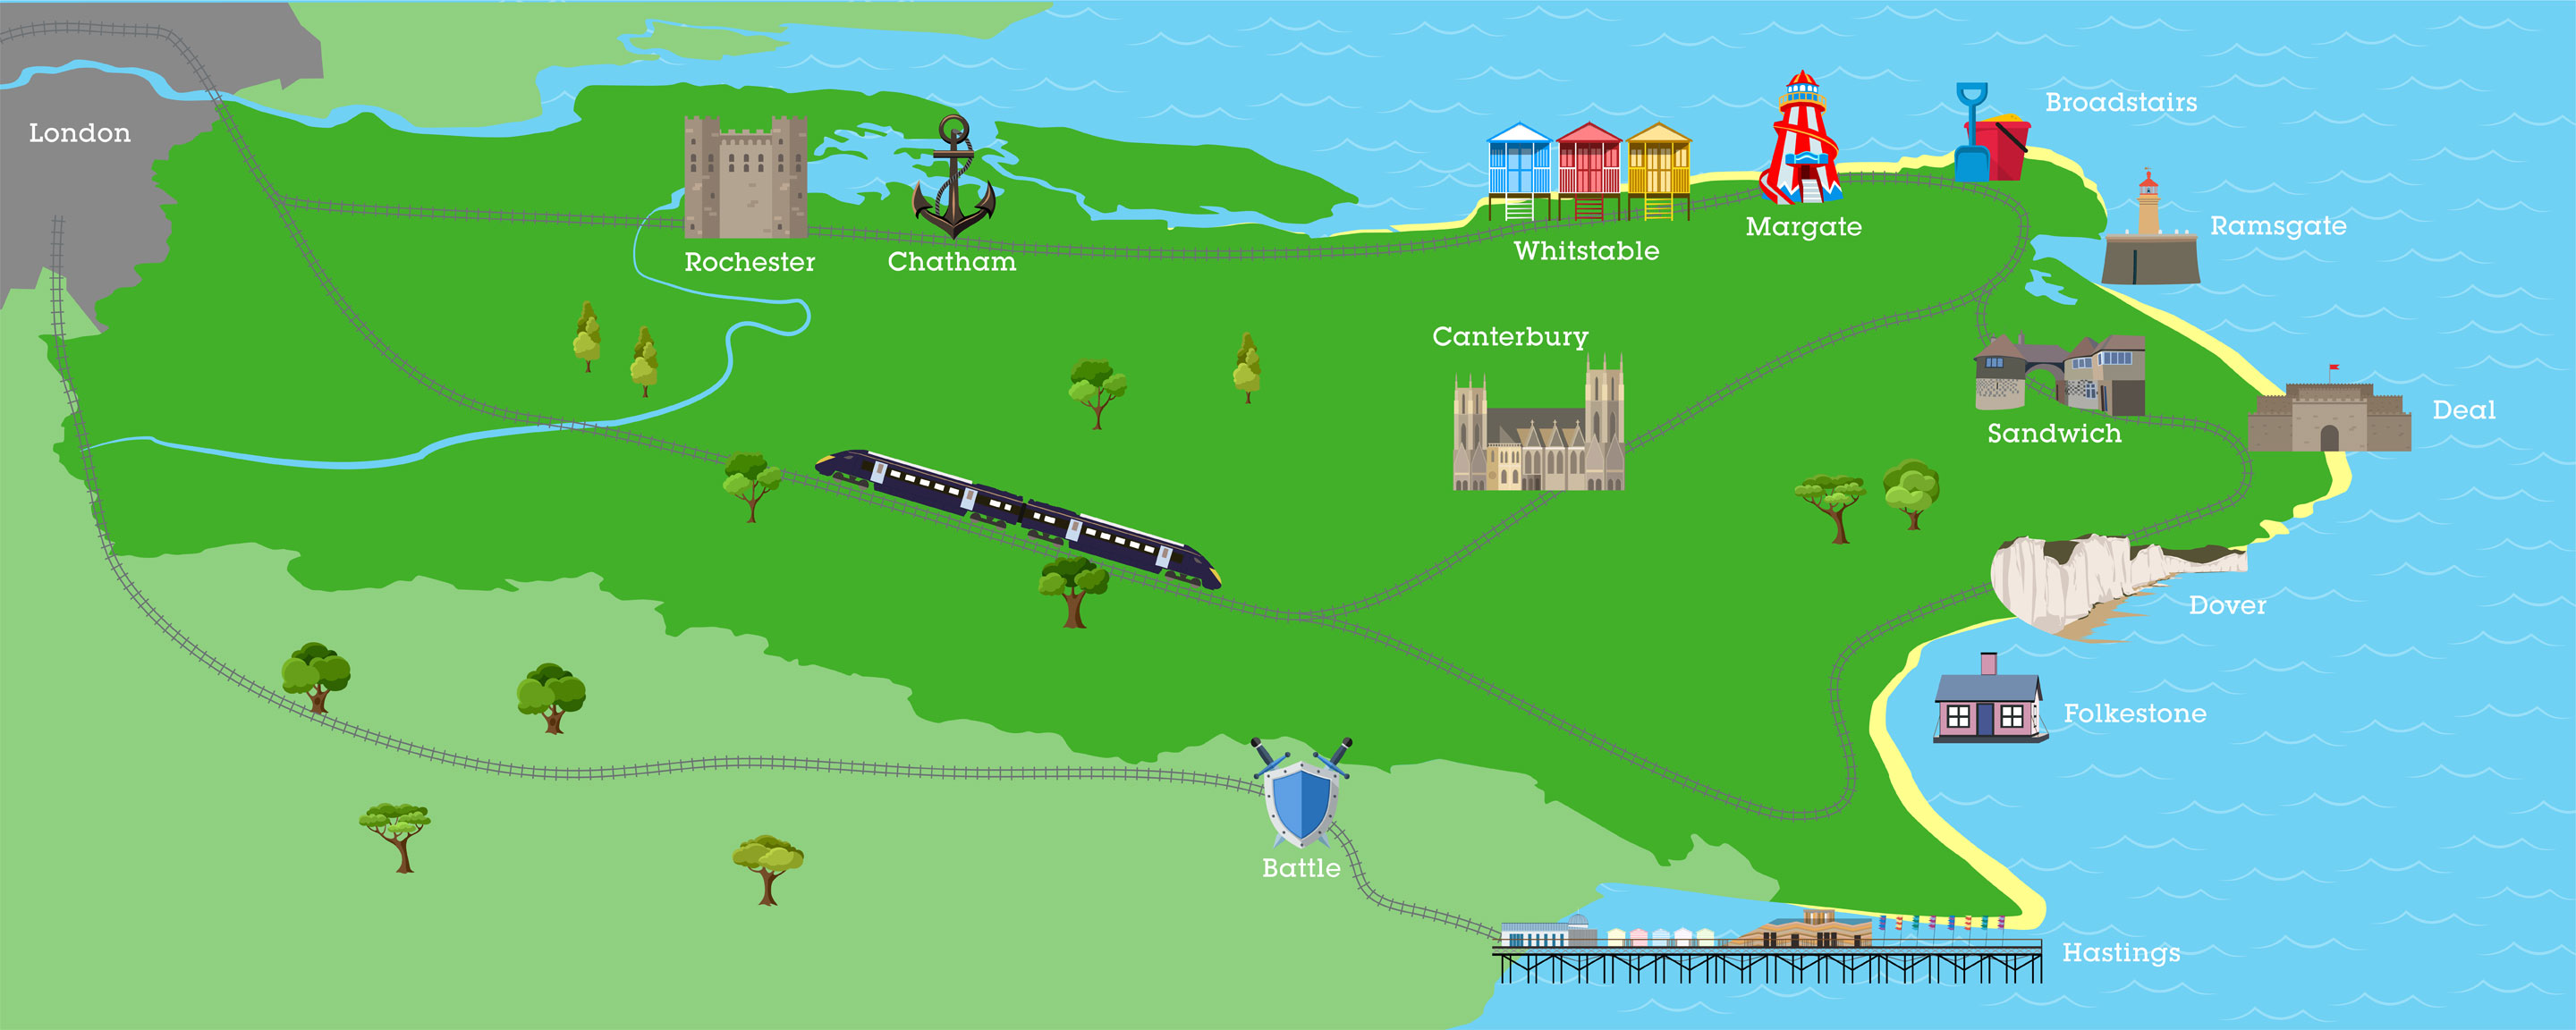 Attractions maps of London and the South East